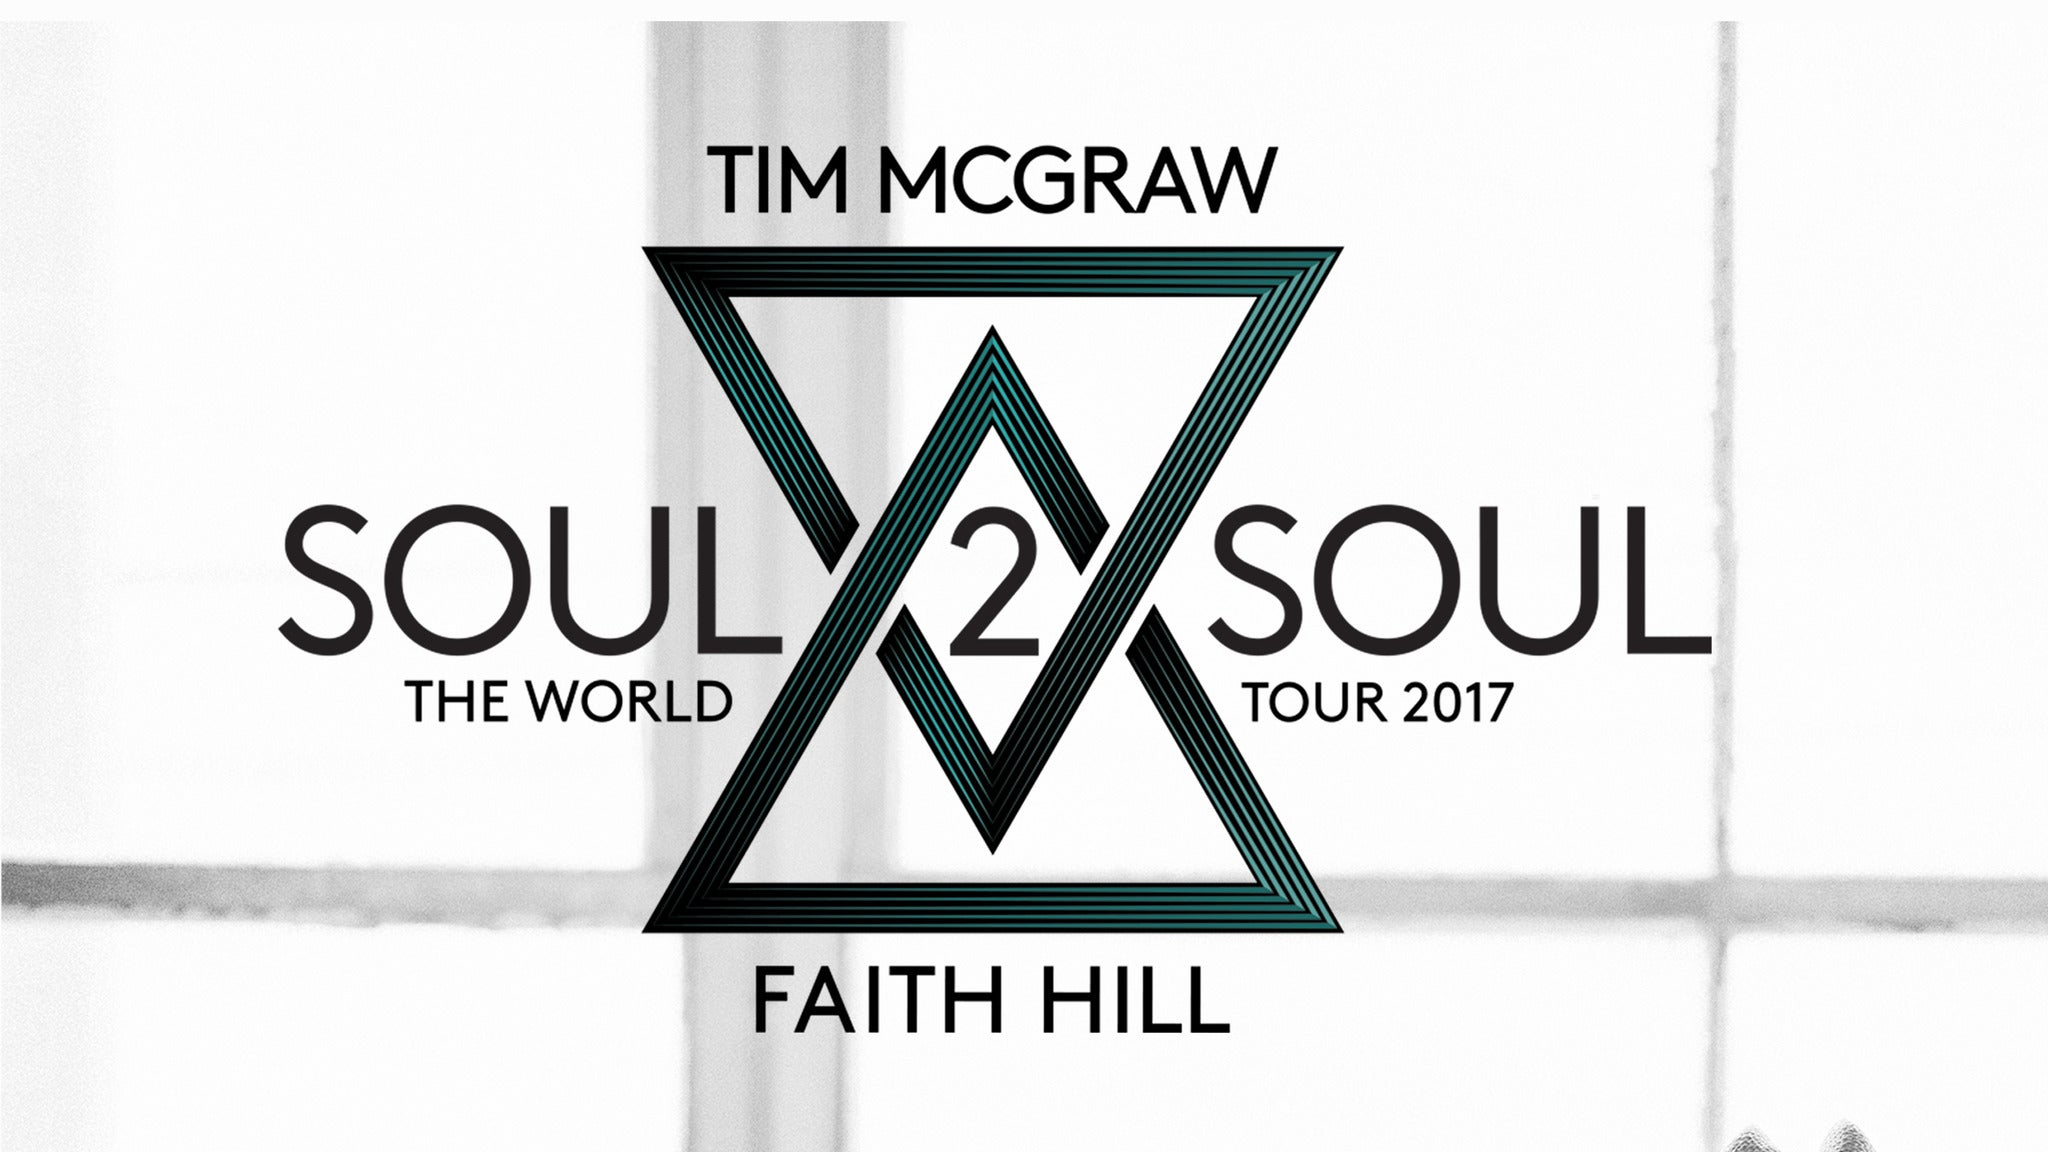 Soul2Soul The World Tour 2017 at Golden 1 Center - Sacramento, CA 95814